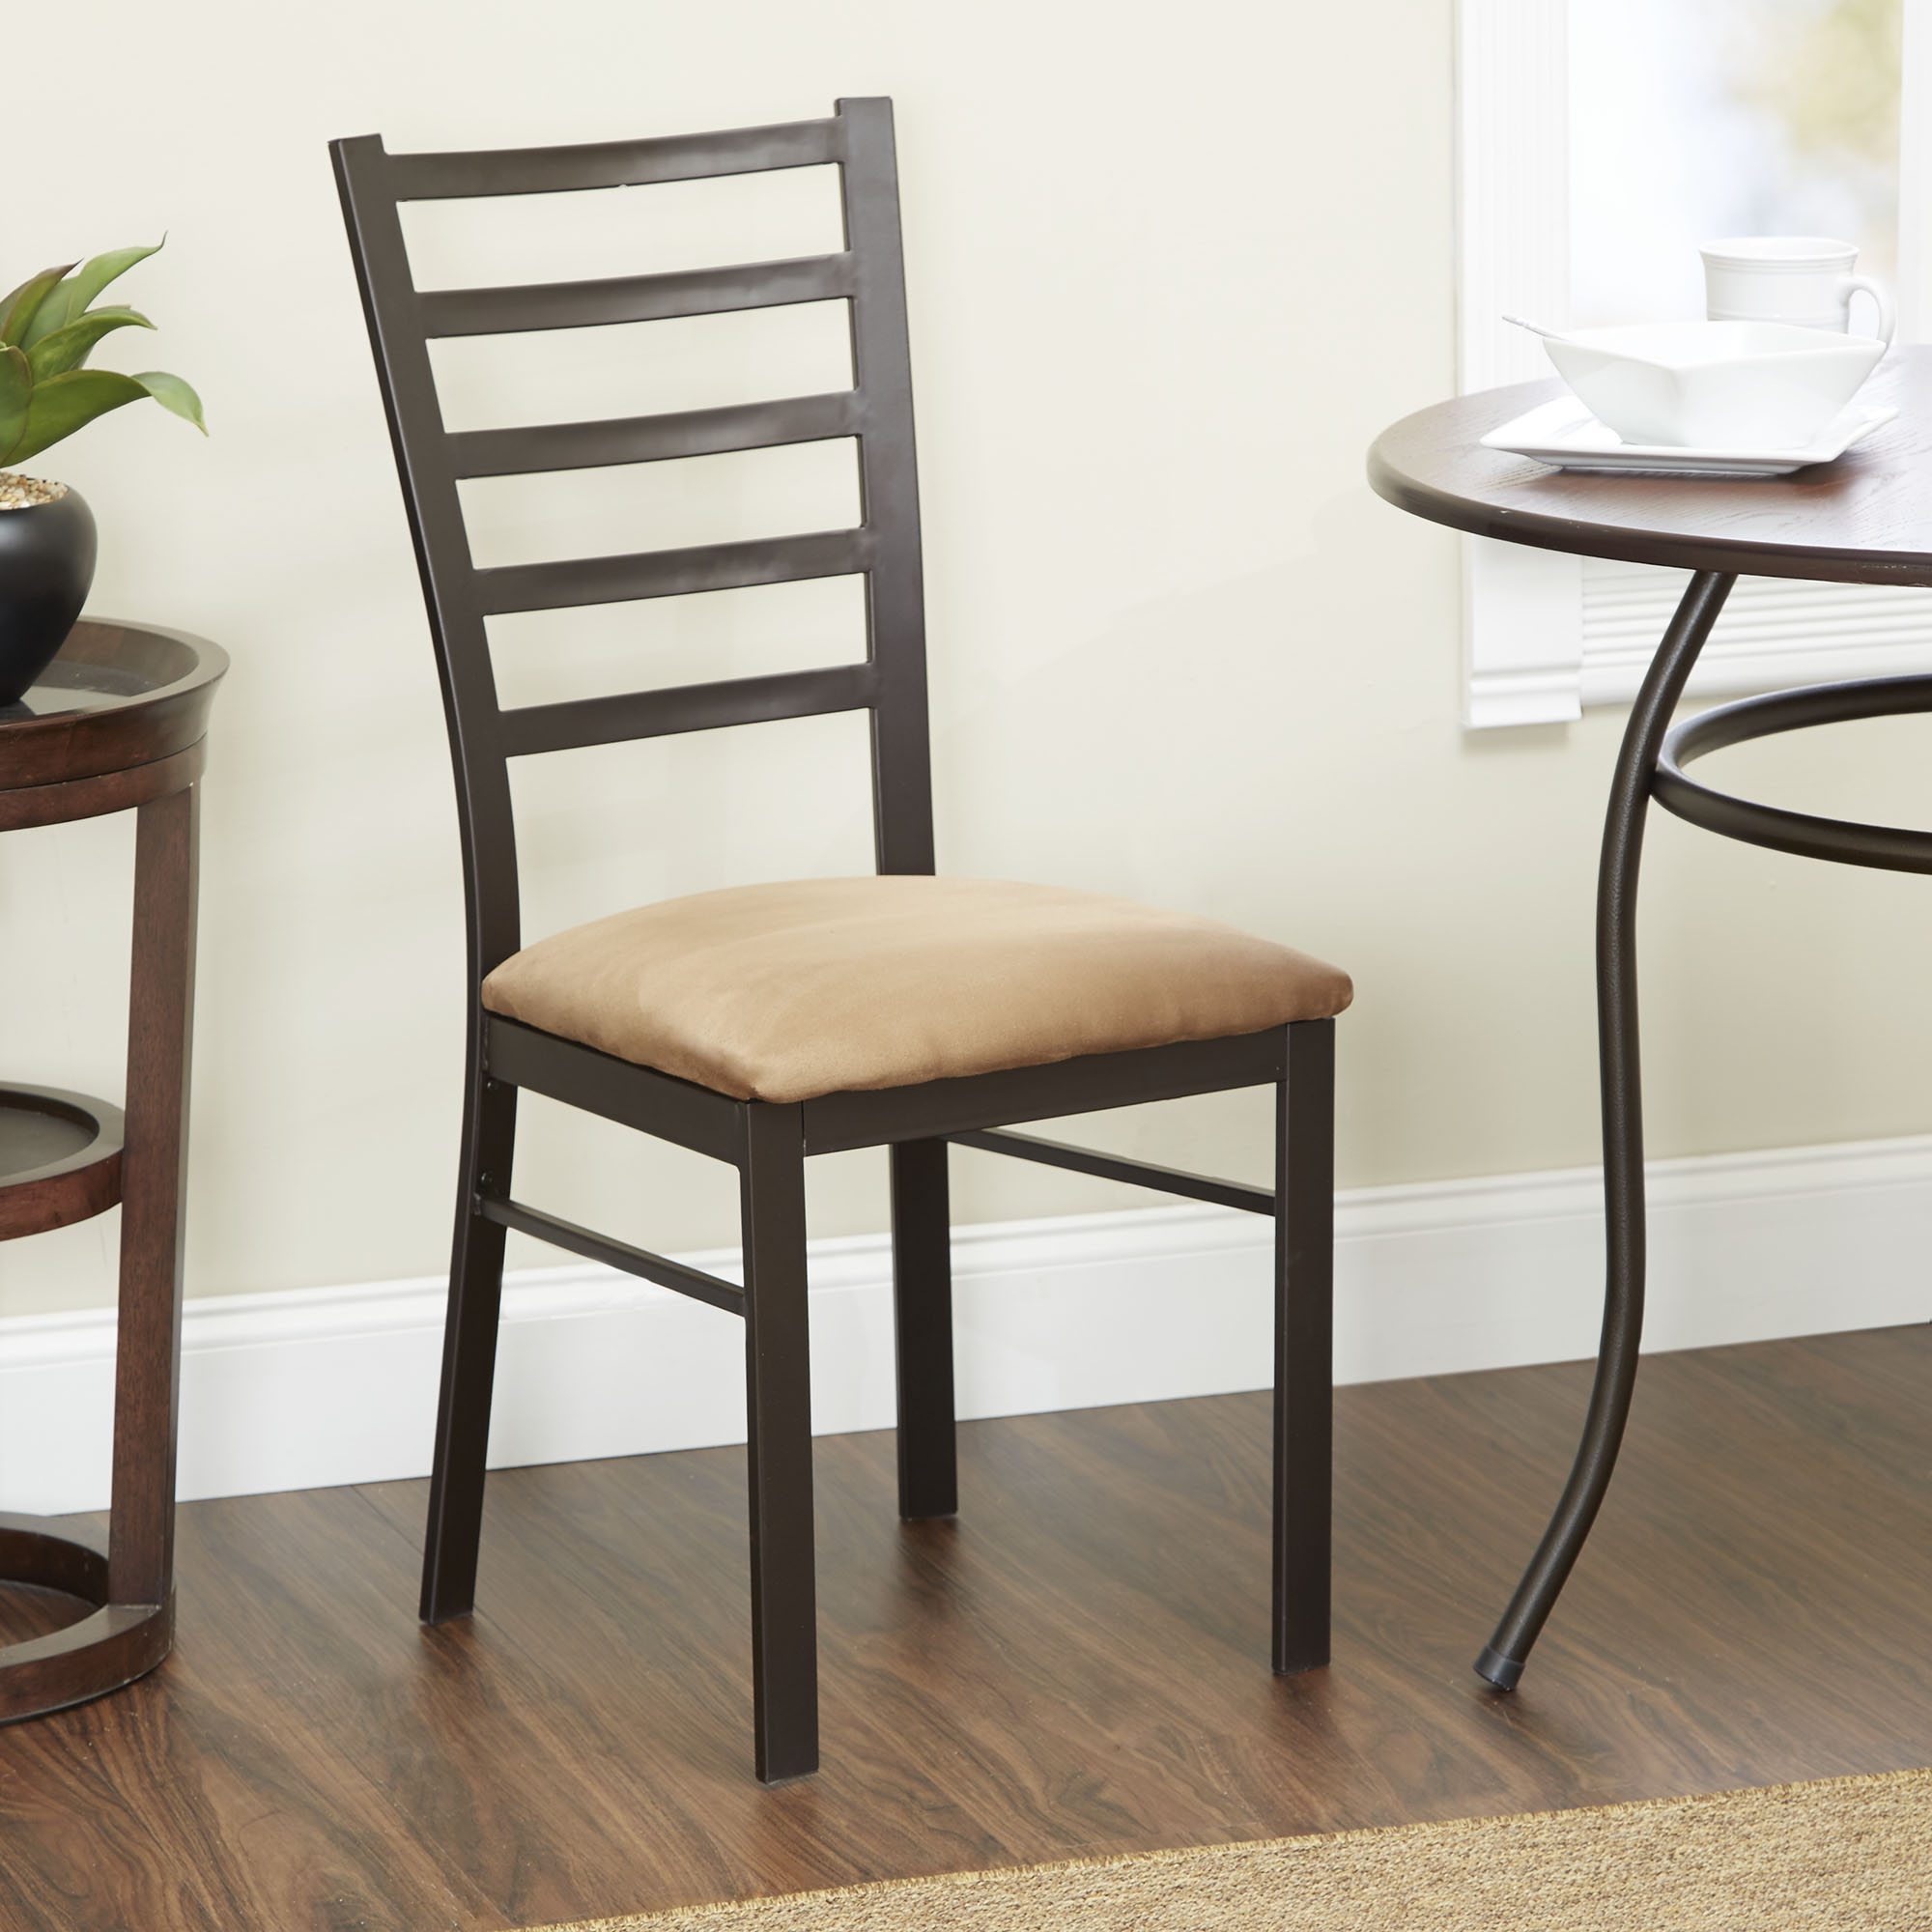 Mainstays Oil-Rubbed Bronze Finish Dining Chair, Multiple Colors